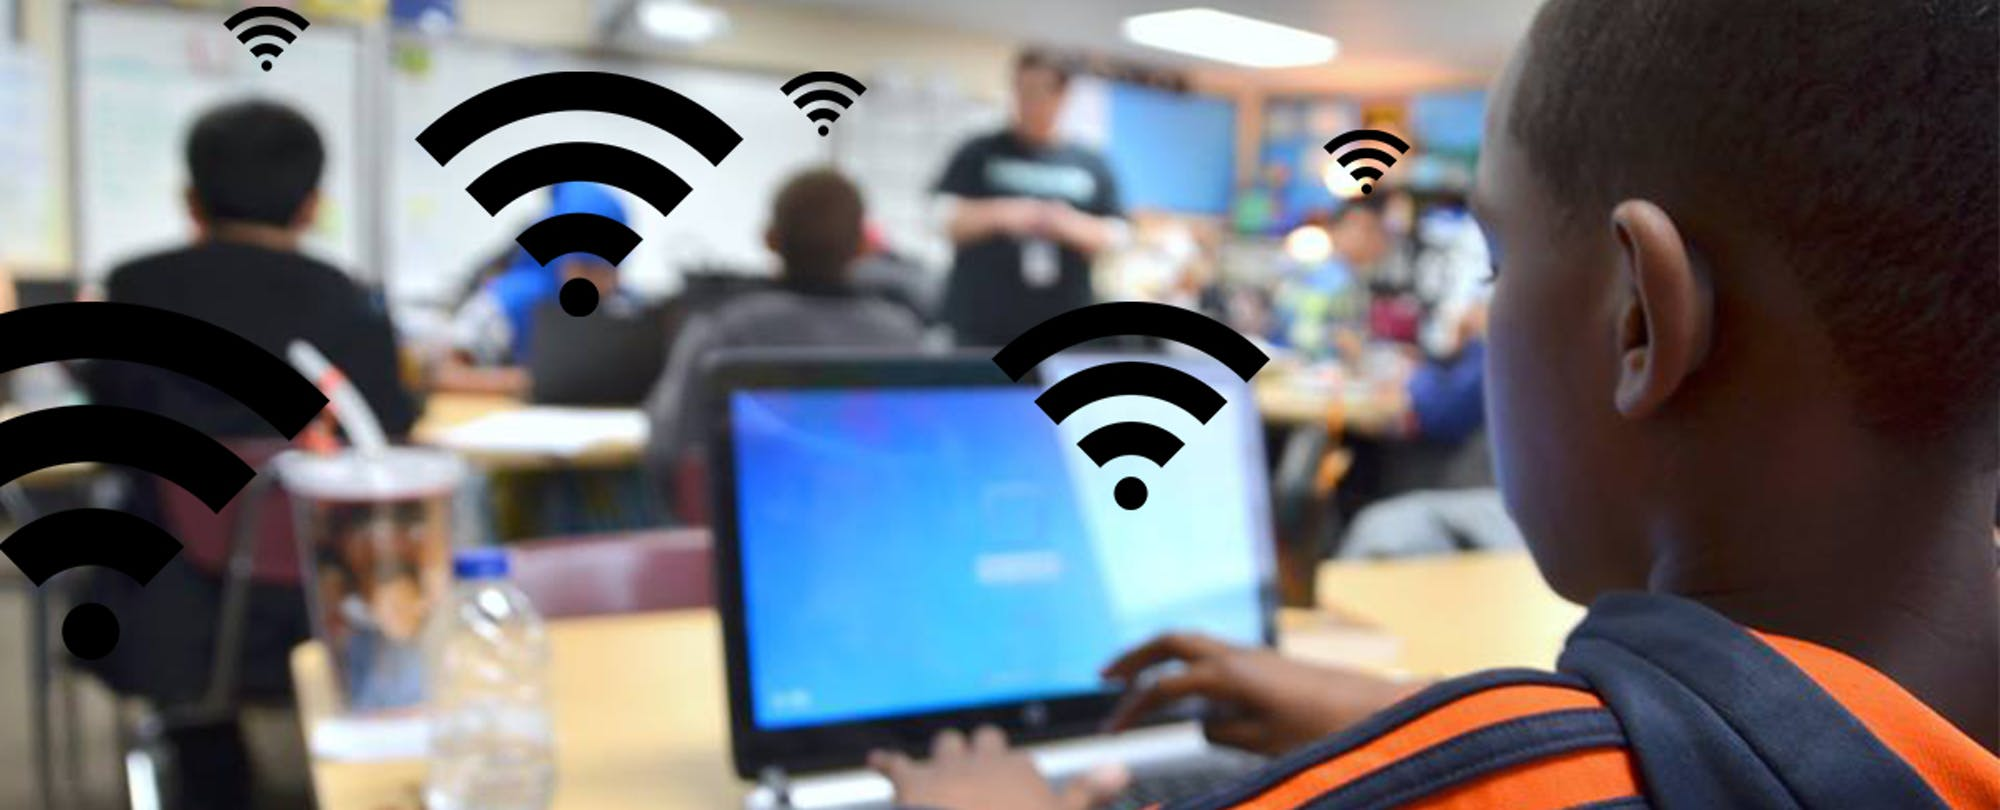 Hotspots, YouTube, WiFi, Oh My! How Renton Prioritizes Infrastructure Over Devices